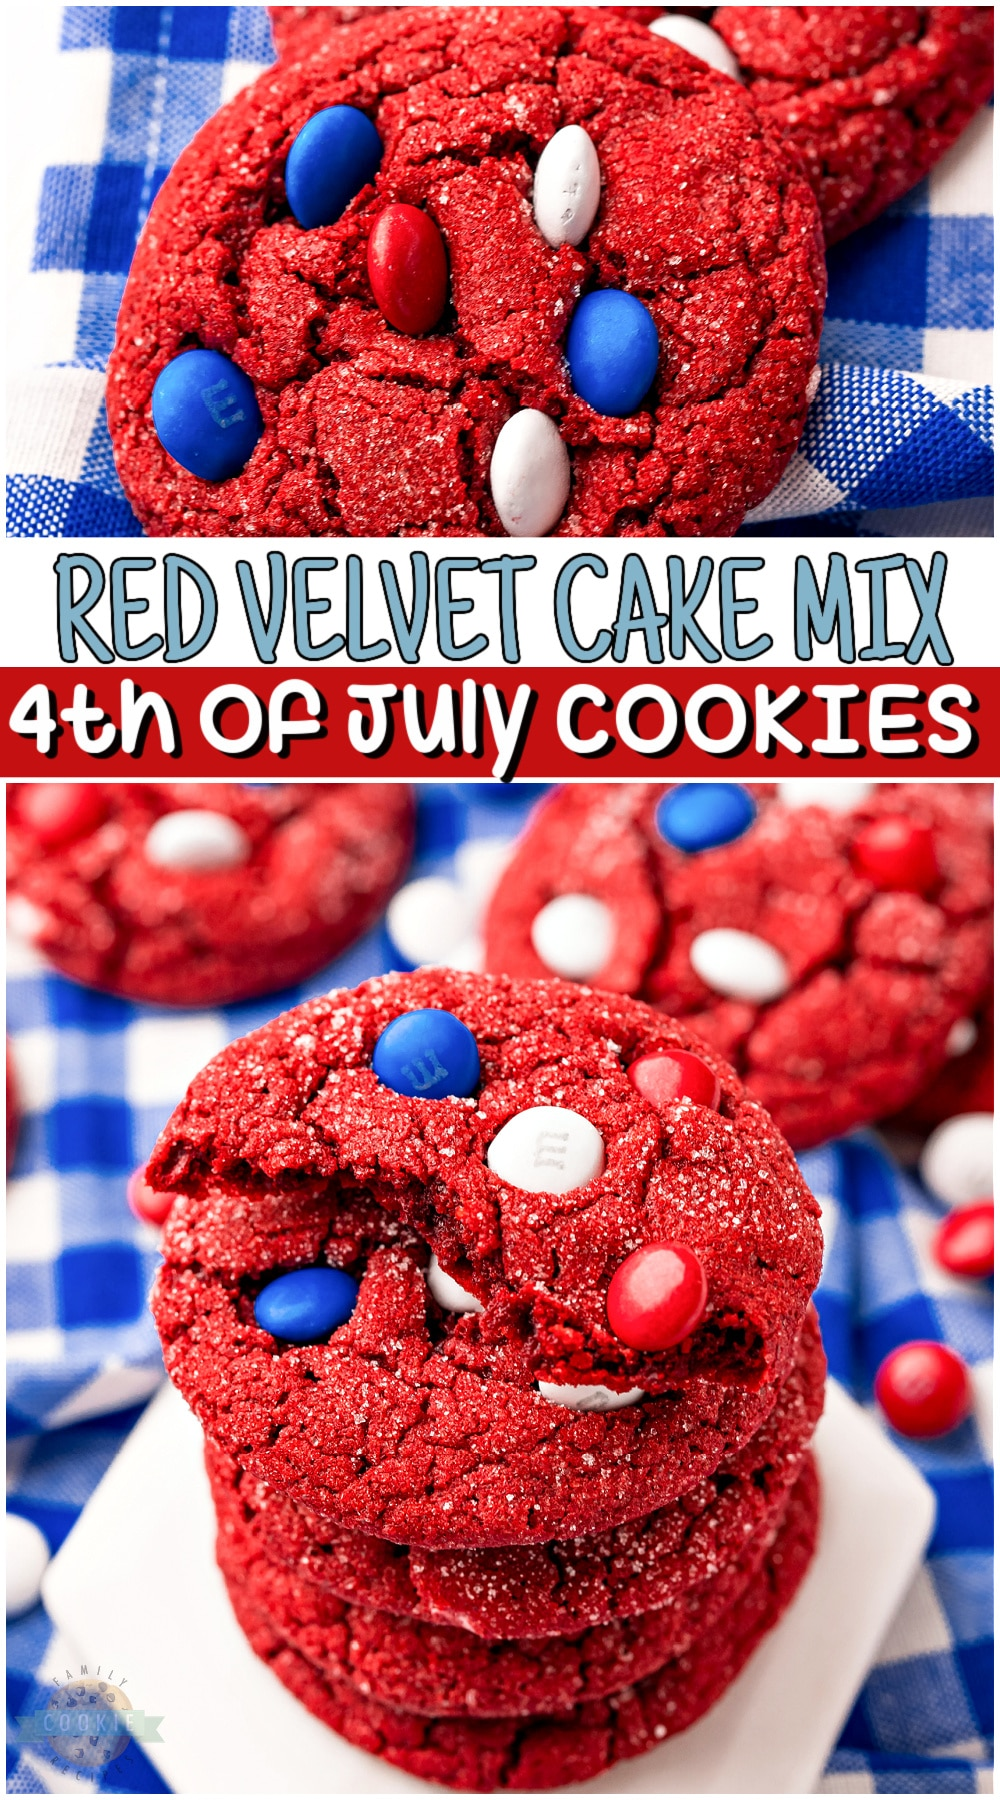 These red velvet cake mix cookies will be the hit of any fourth of July party. Made with boxed cake mix and colorful patriotic M&Ms, every bite is festive, fun, and delicious! #cookies #redwhiteblue #4thofJuly #cakemix #easyrecipe from FAMILY COOKIE RECIPES via @familycookierecipes